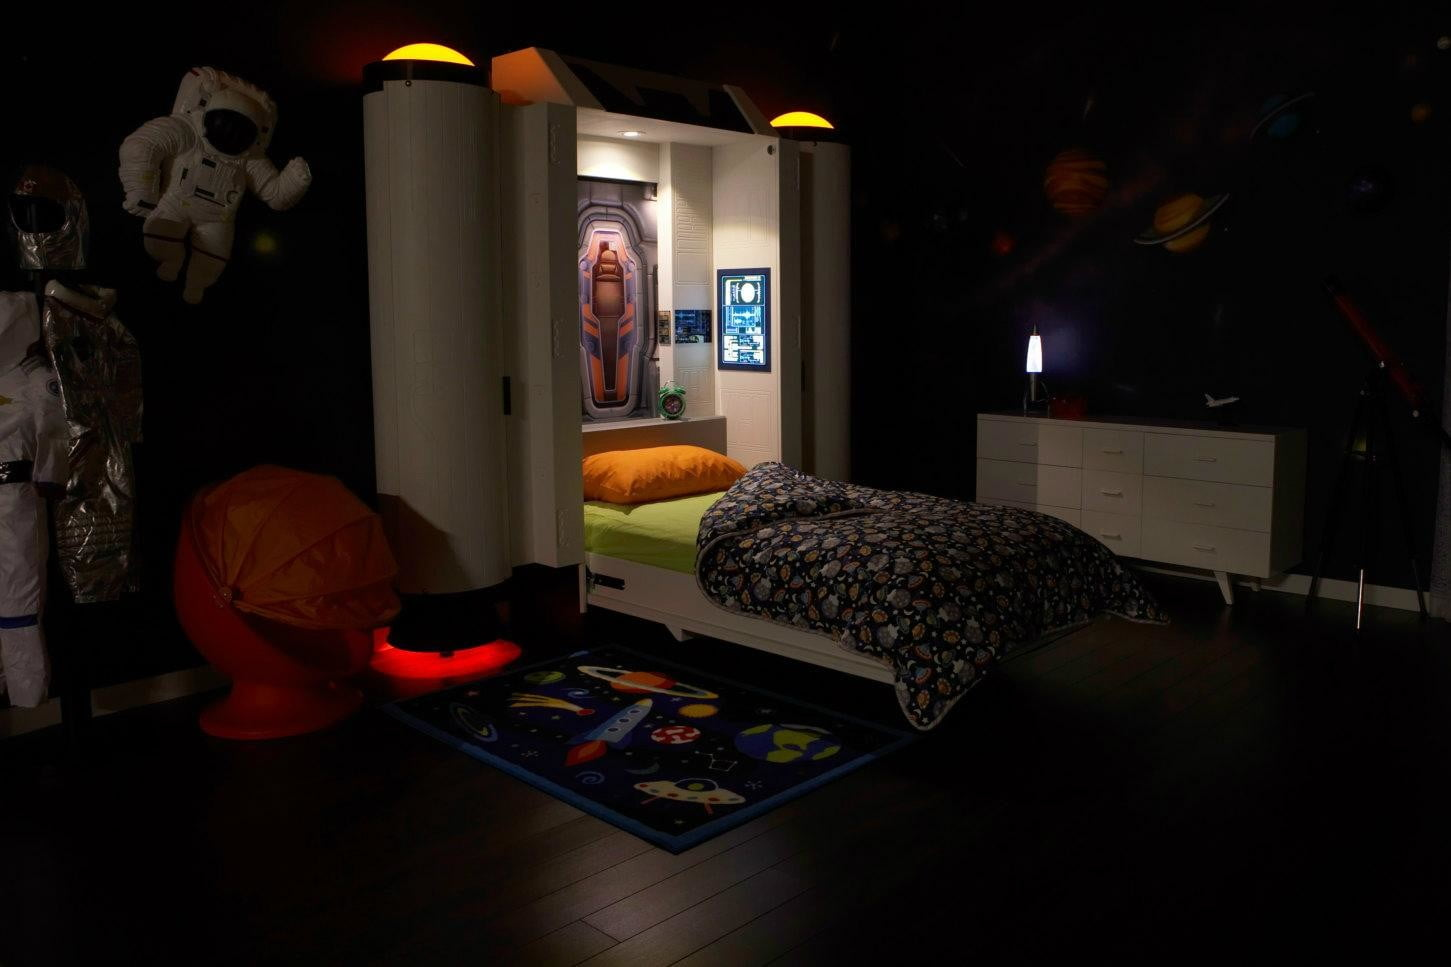 fable bedworks amazing kids beds cost more than a car etsy space bed images